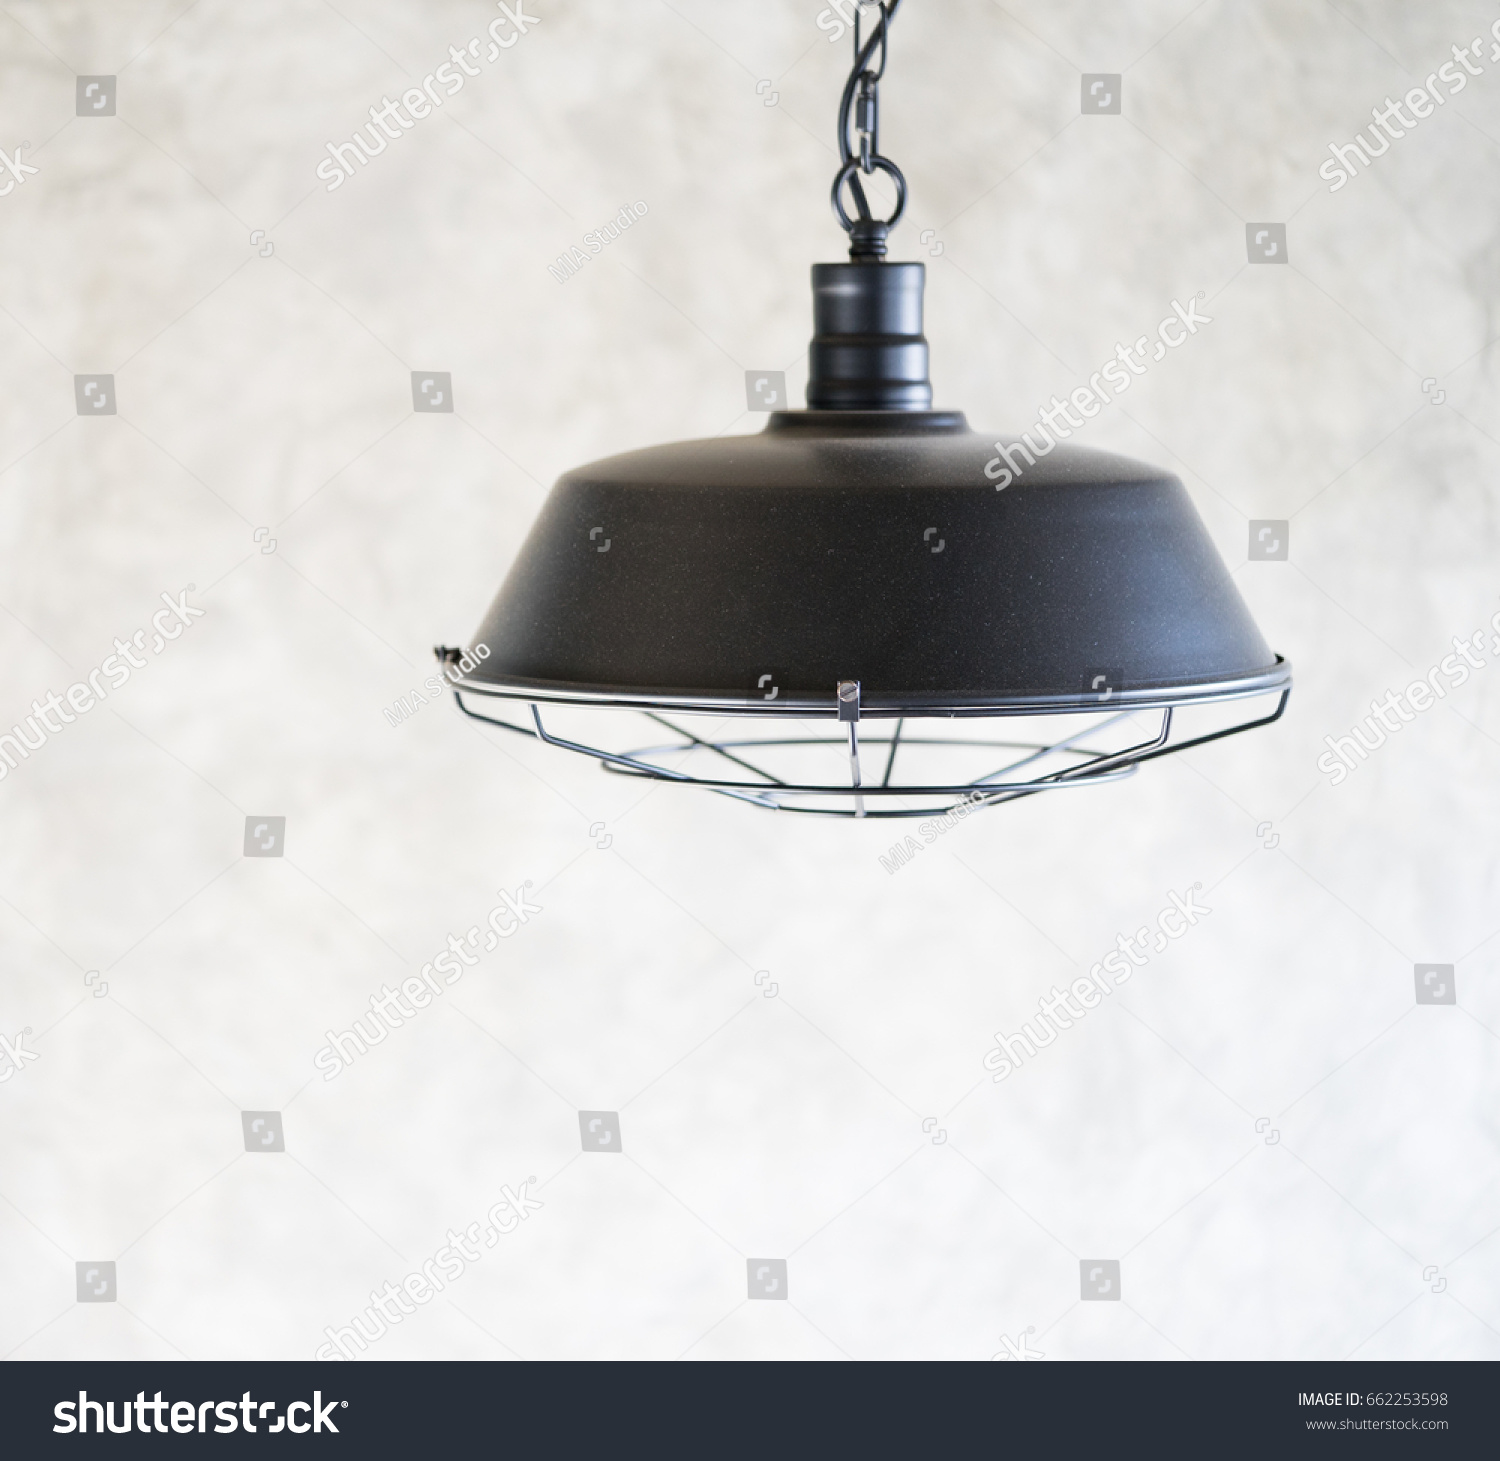 hanging shade image adjustable glass collection led industrial lighting product pendant dorado light with